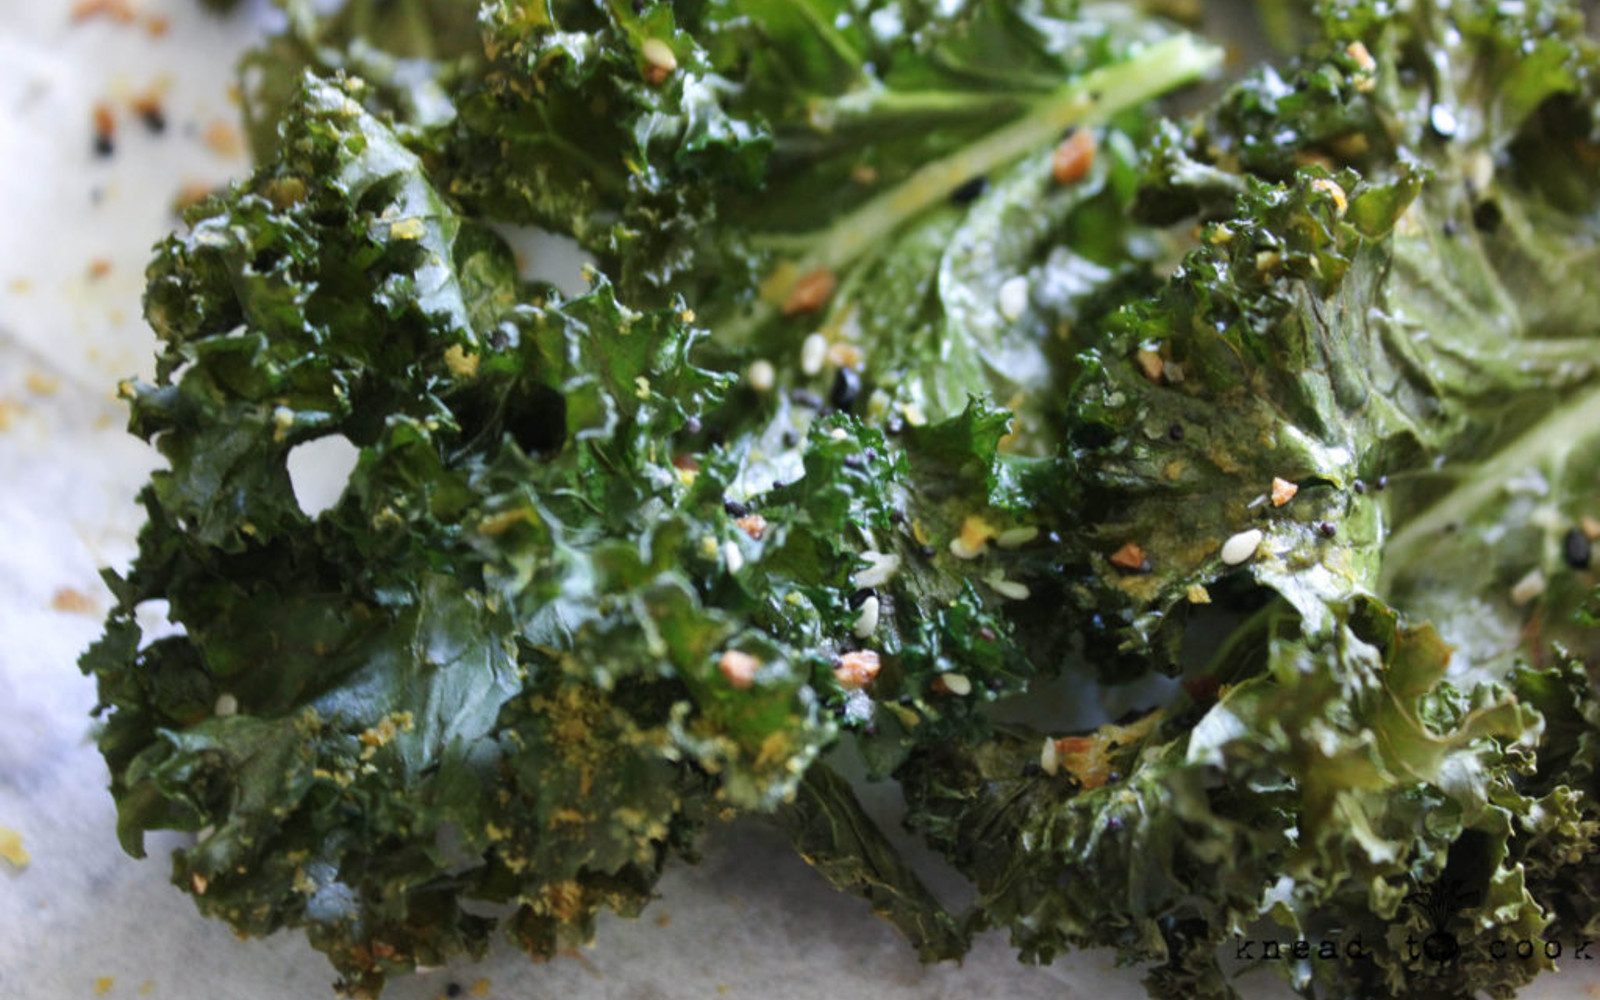 Vegan Gluten-Free Everything Bagel Kale Chips with seasoning